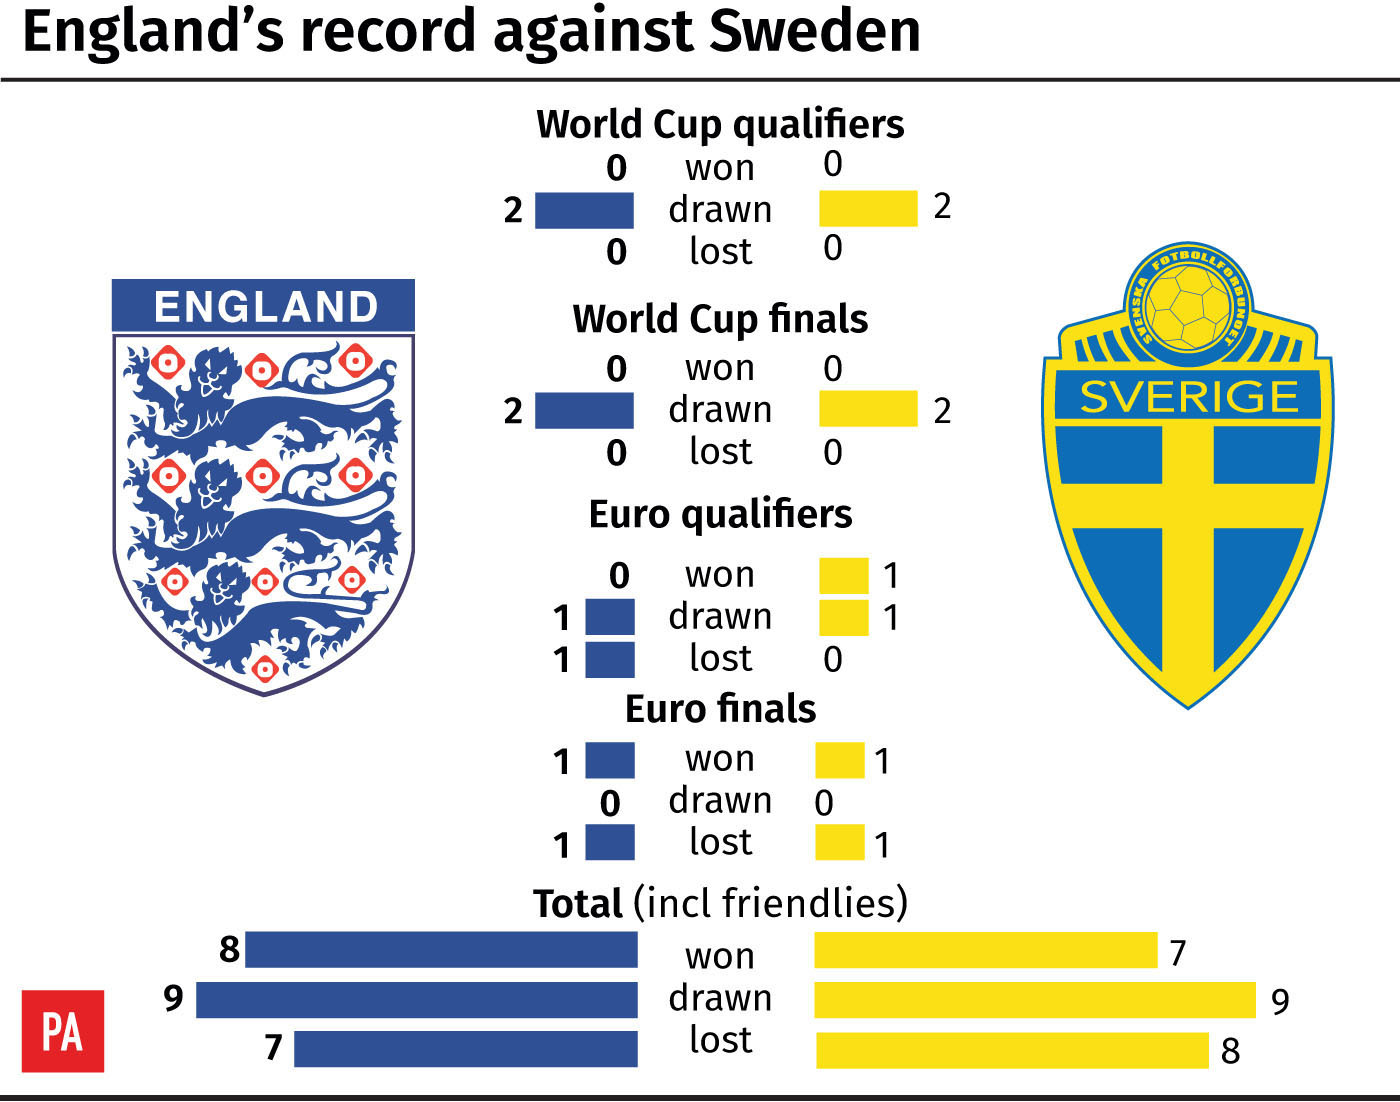 Eriksson: England has better chance vs Brazil tha n Sweden